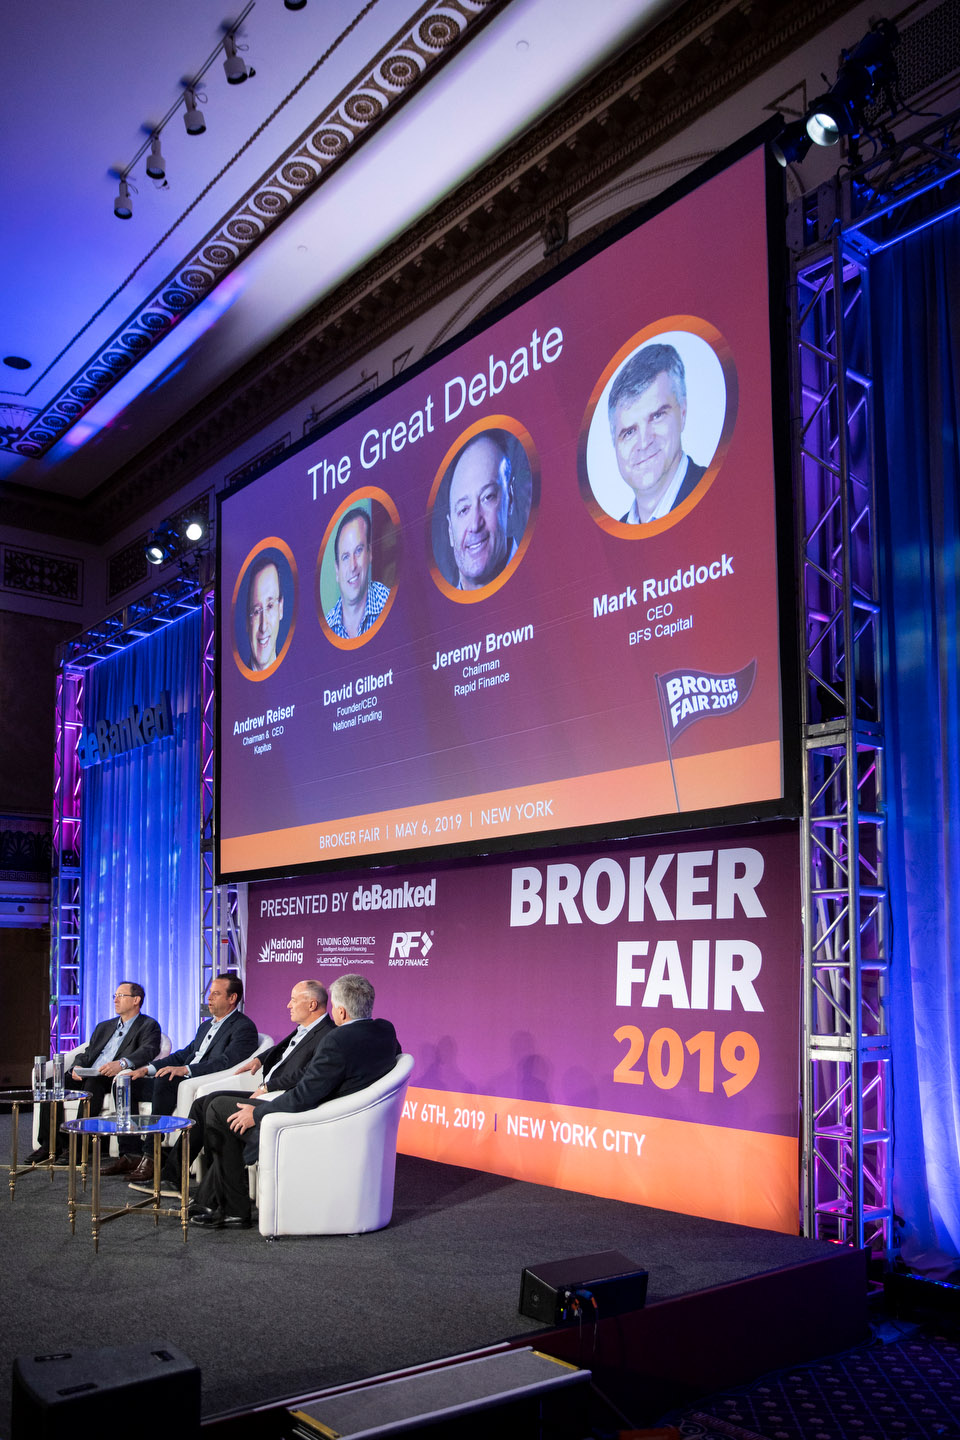 Broker Fair 2019 - Presented by deBanked - 192